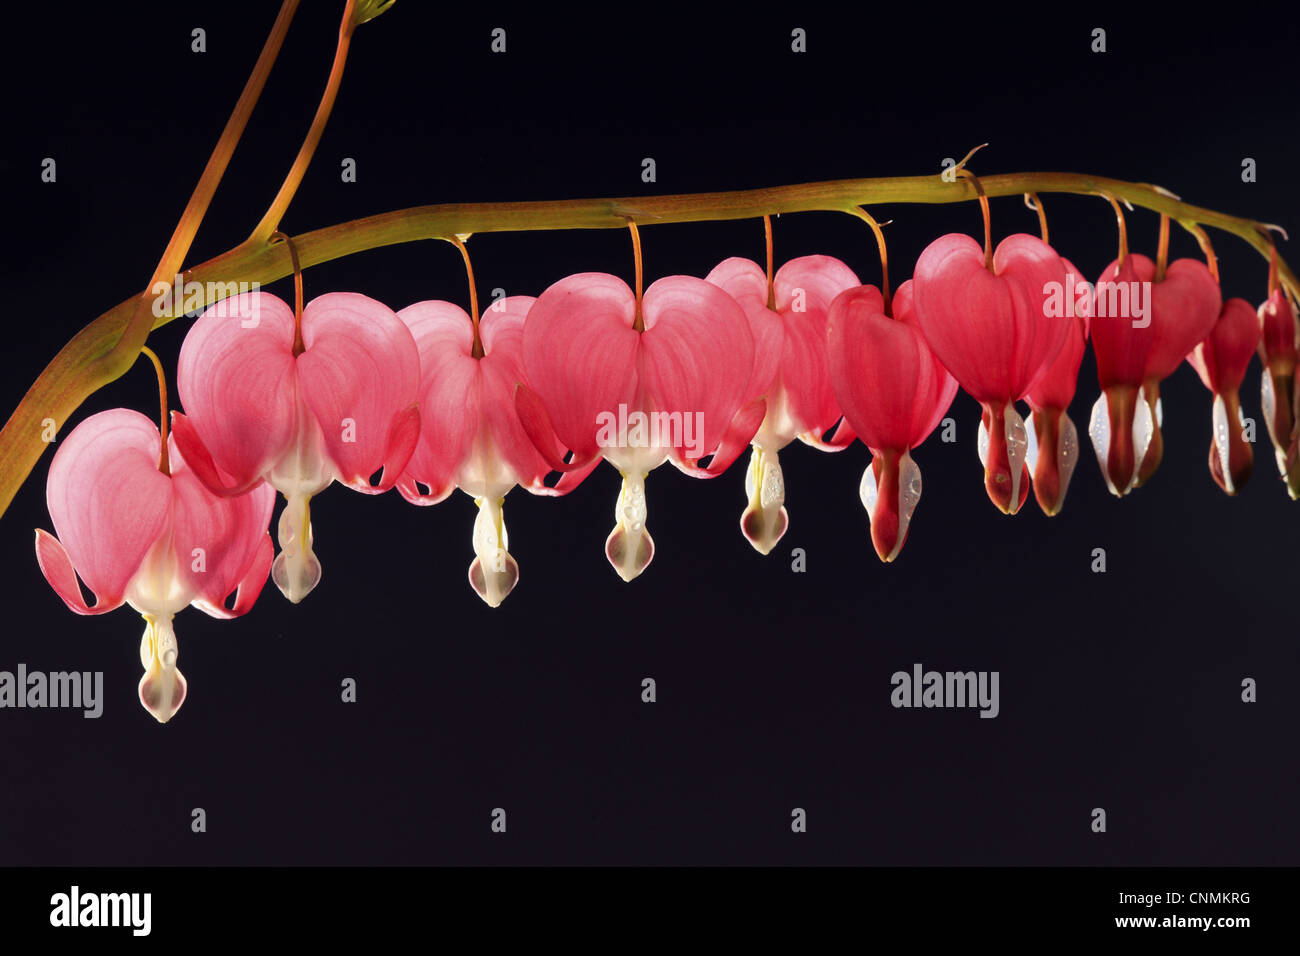 tr nendes herz dicentra spectabilis nahaufnahmen von blumen stockfoto bild 47783108 alamy. Black Bedroom Furniture Sets. Home Design Ideas